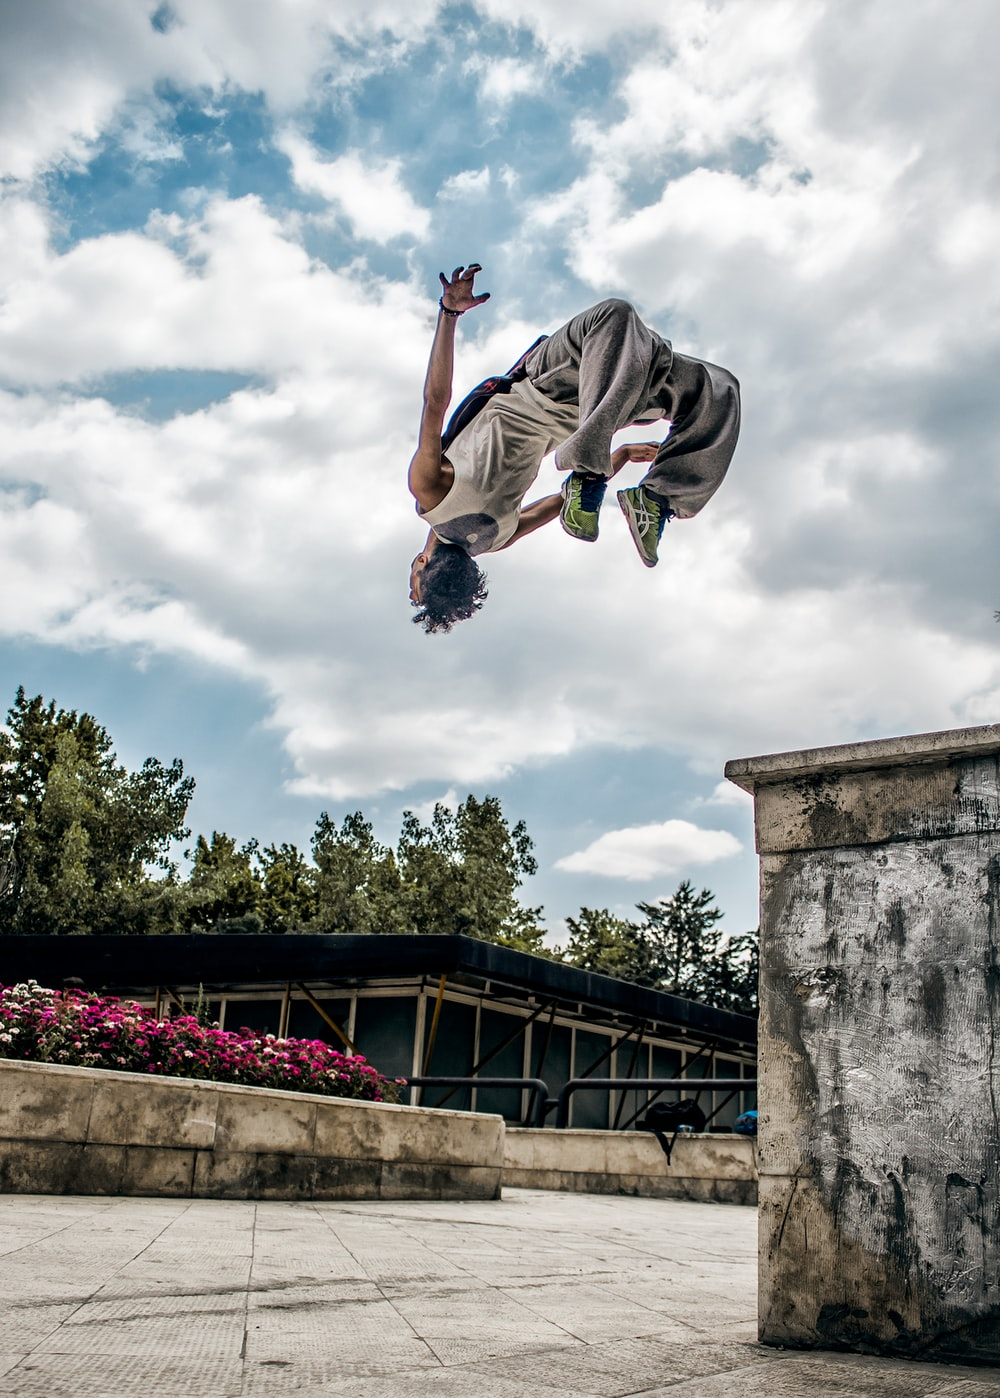 500 Parkour Pictures Hd Download Free Images On Unsplash